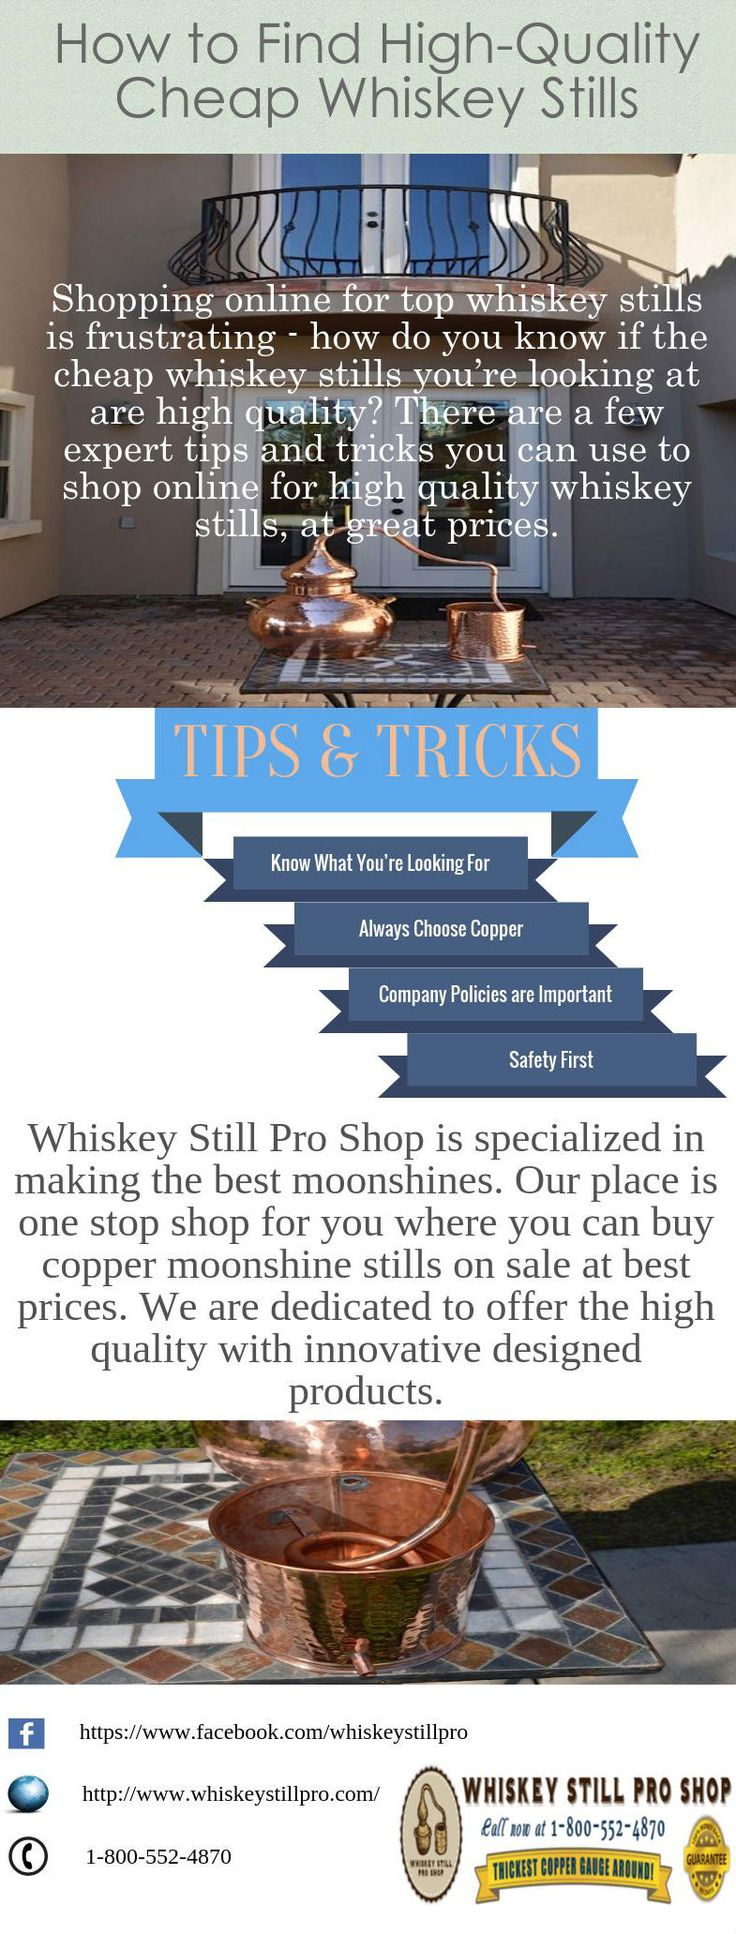 At Whiskey Still Pro Shop, you can find all types of stills which are easy to clean and maintain. This time, we have some special offers for you. Grab the opportunity to buy copper moonshine stills which are on sale for valid time.  http://www.moonshinestills.blogspot.com/2015/09/the-top-3-myths-about-moonshine-stills.html